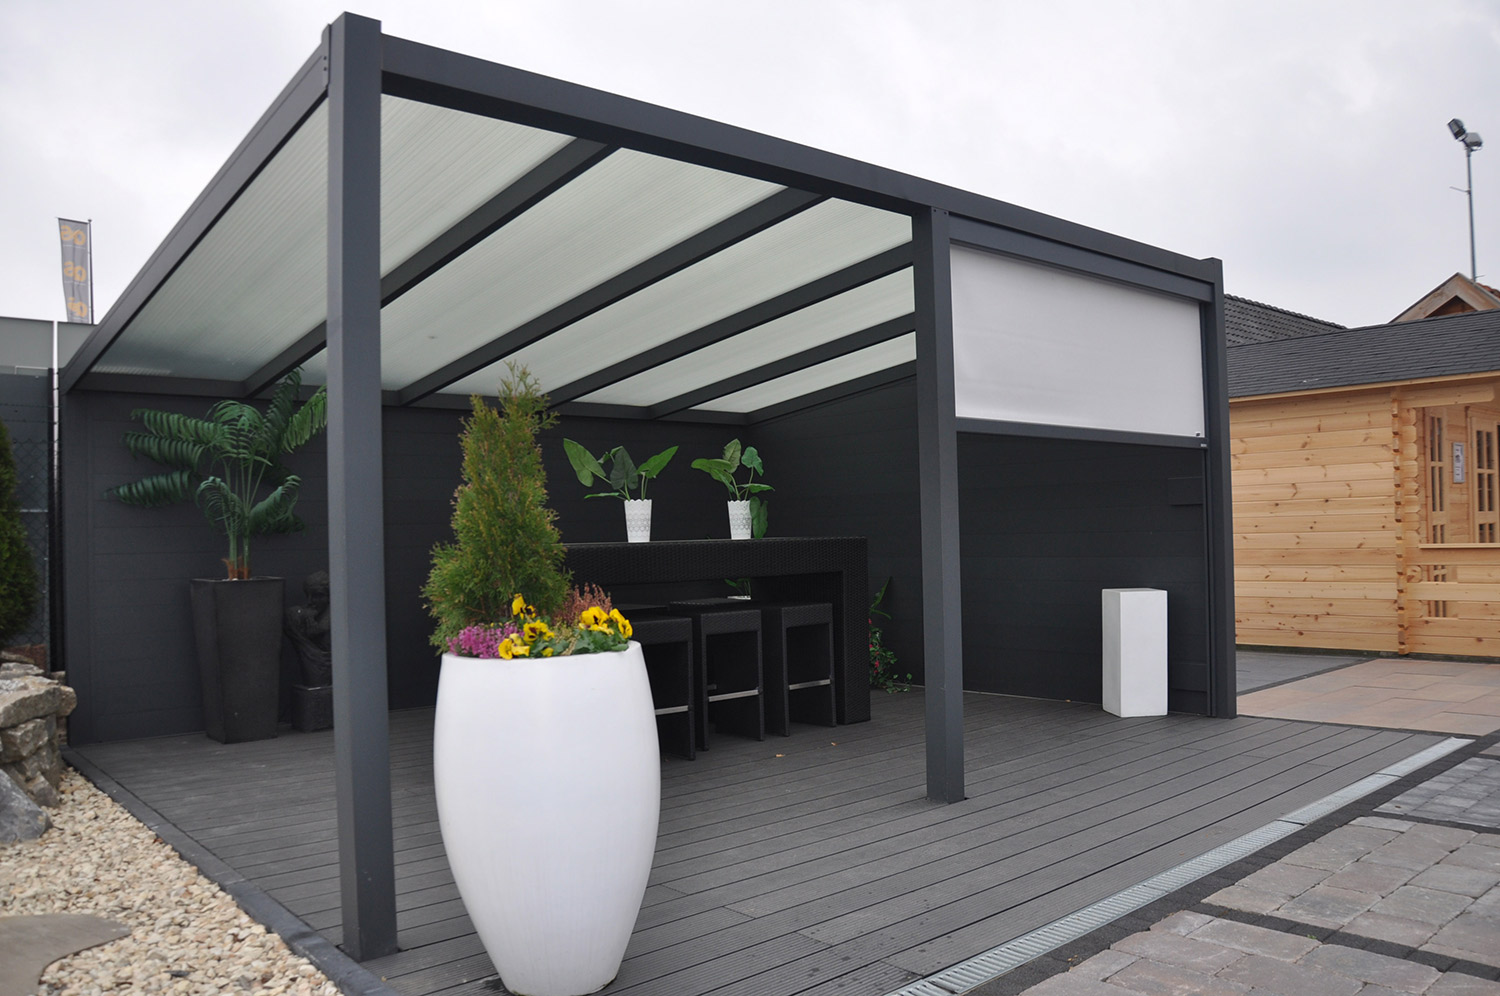 protections solaires pour pergolas et v randas avec stores. Black Bedroom Furniture Sets. Home Design Ideas